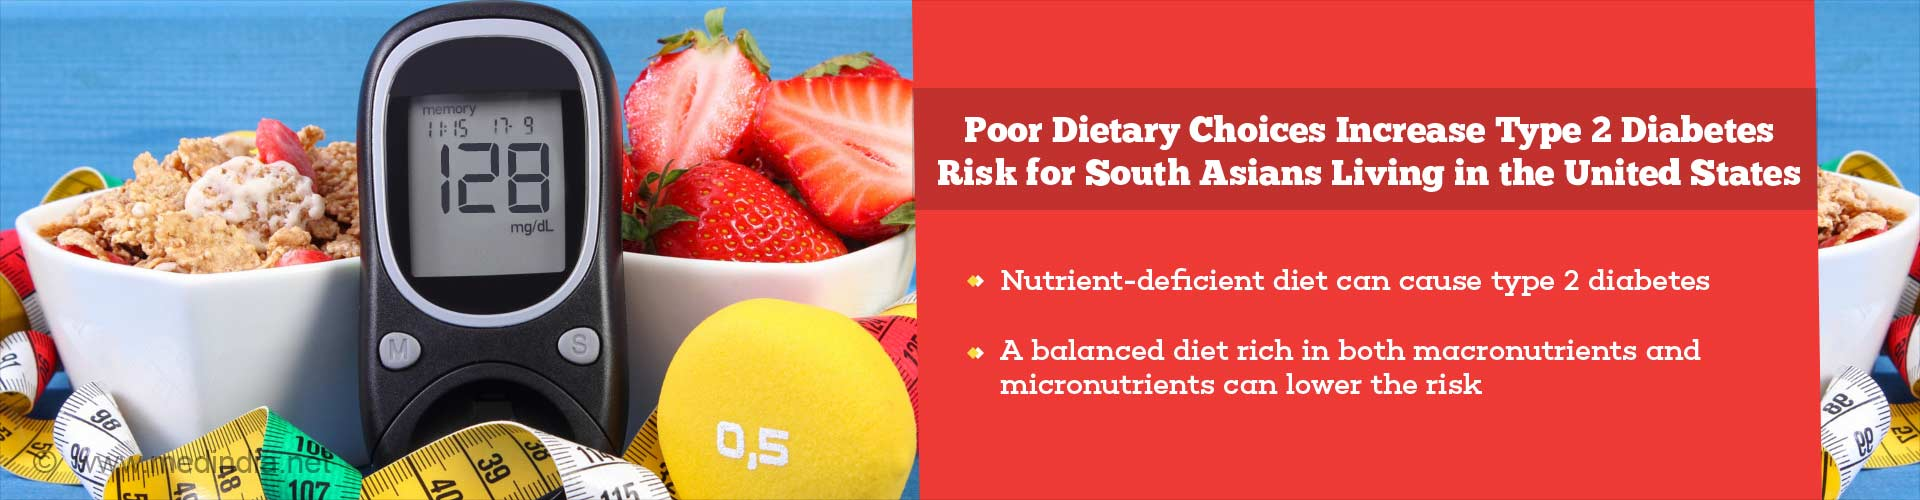 Type 2 Diabetes Linked to Nutrient-deficient Diet for South Asians in the US